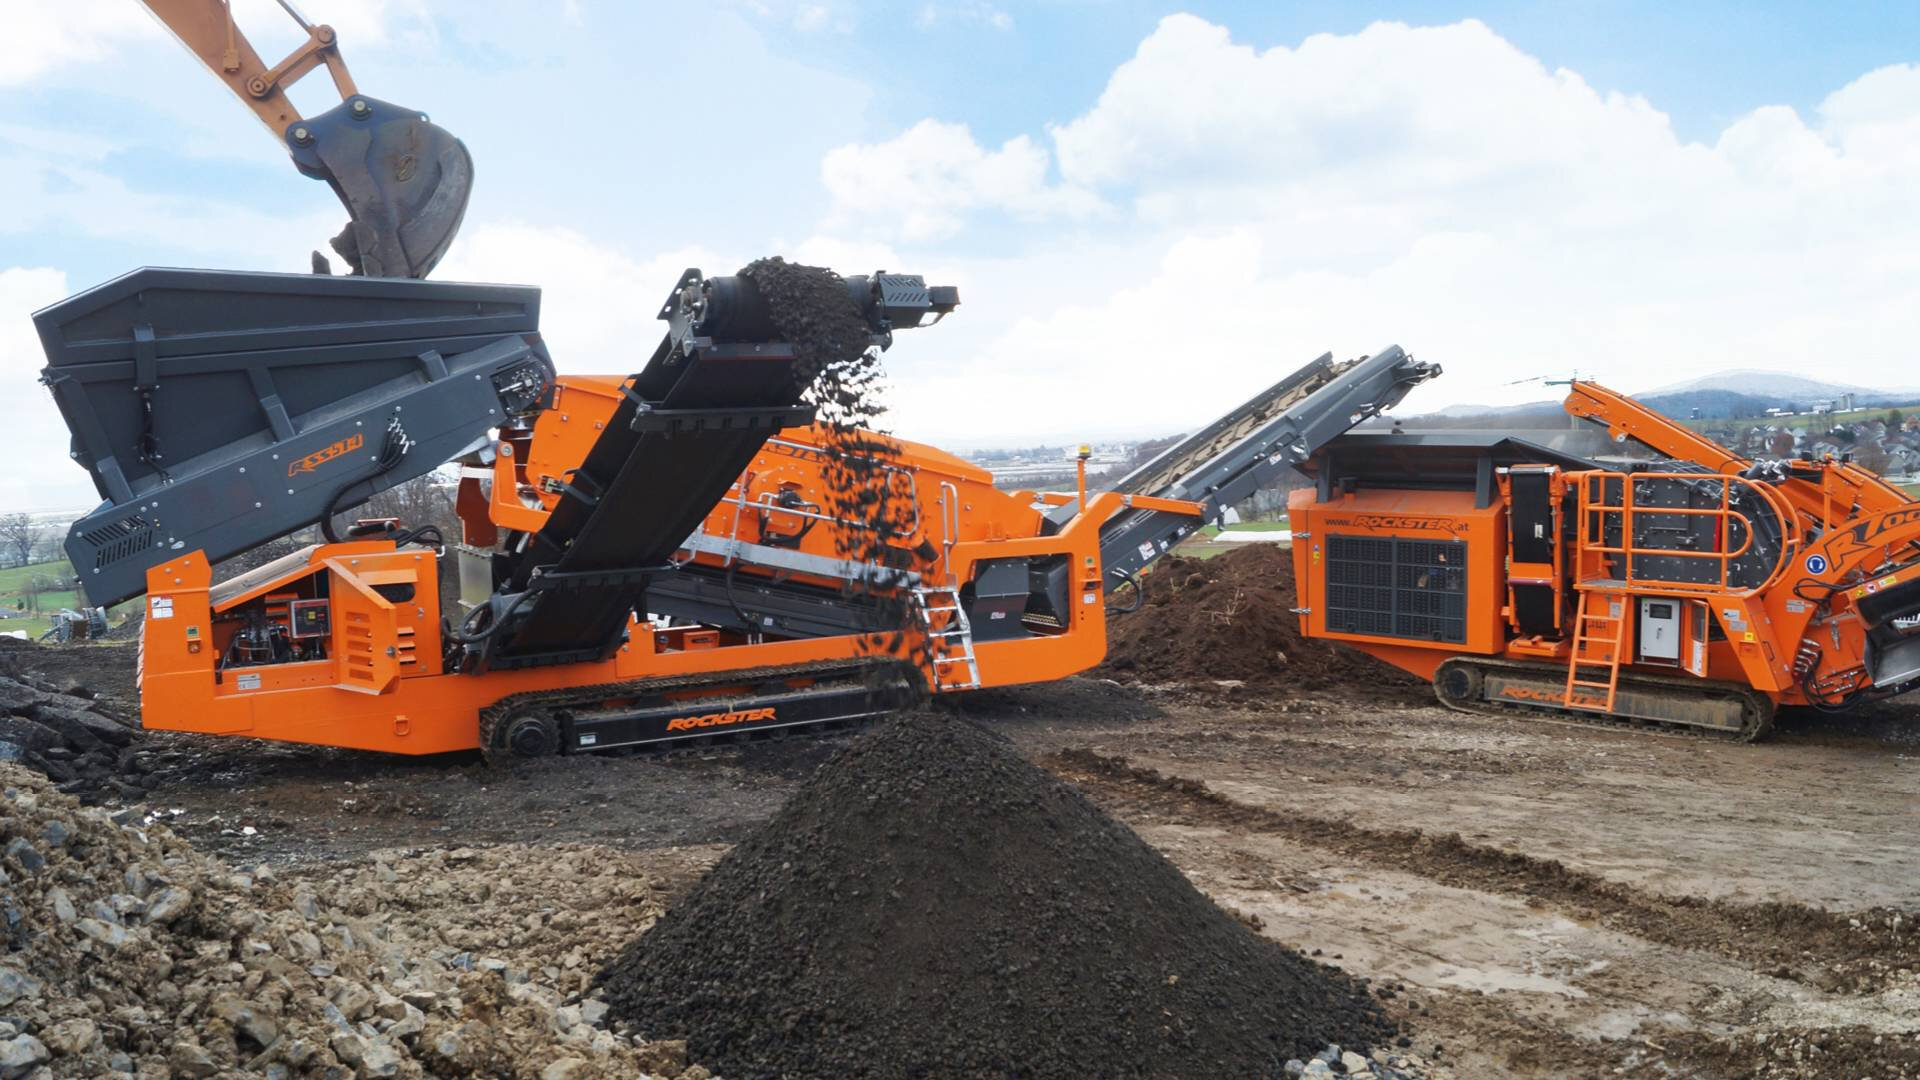 Gallery image 3 - SCALPING SCREEN - high power RSS514 is designed for a wide range of applications such as separating demolition debris, asphalt, concrete, bricks, coal, metal, soil, compost or natural stone.